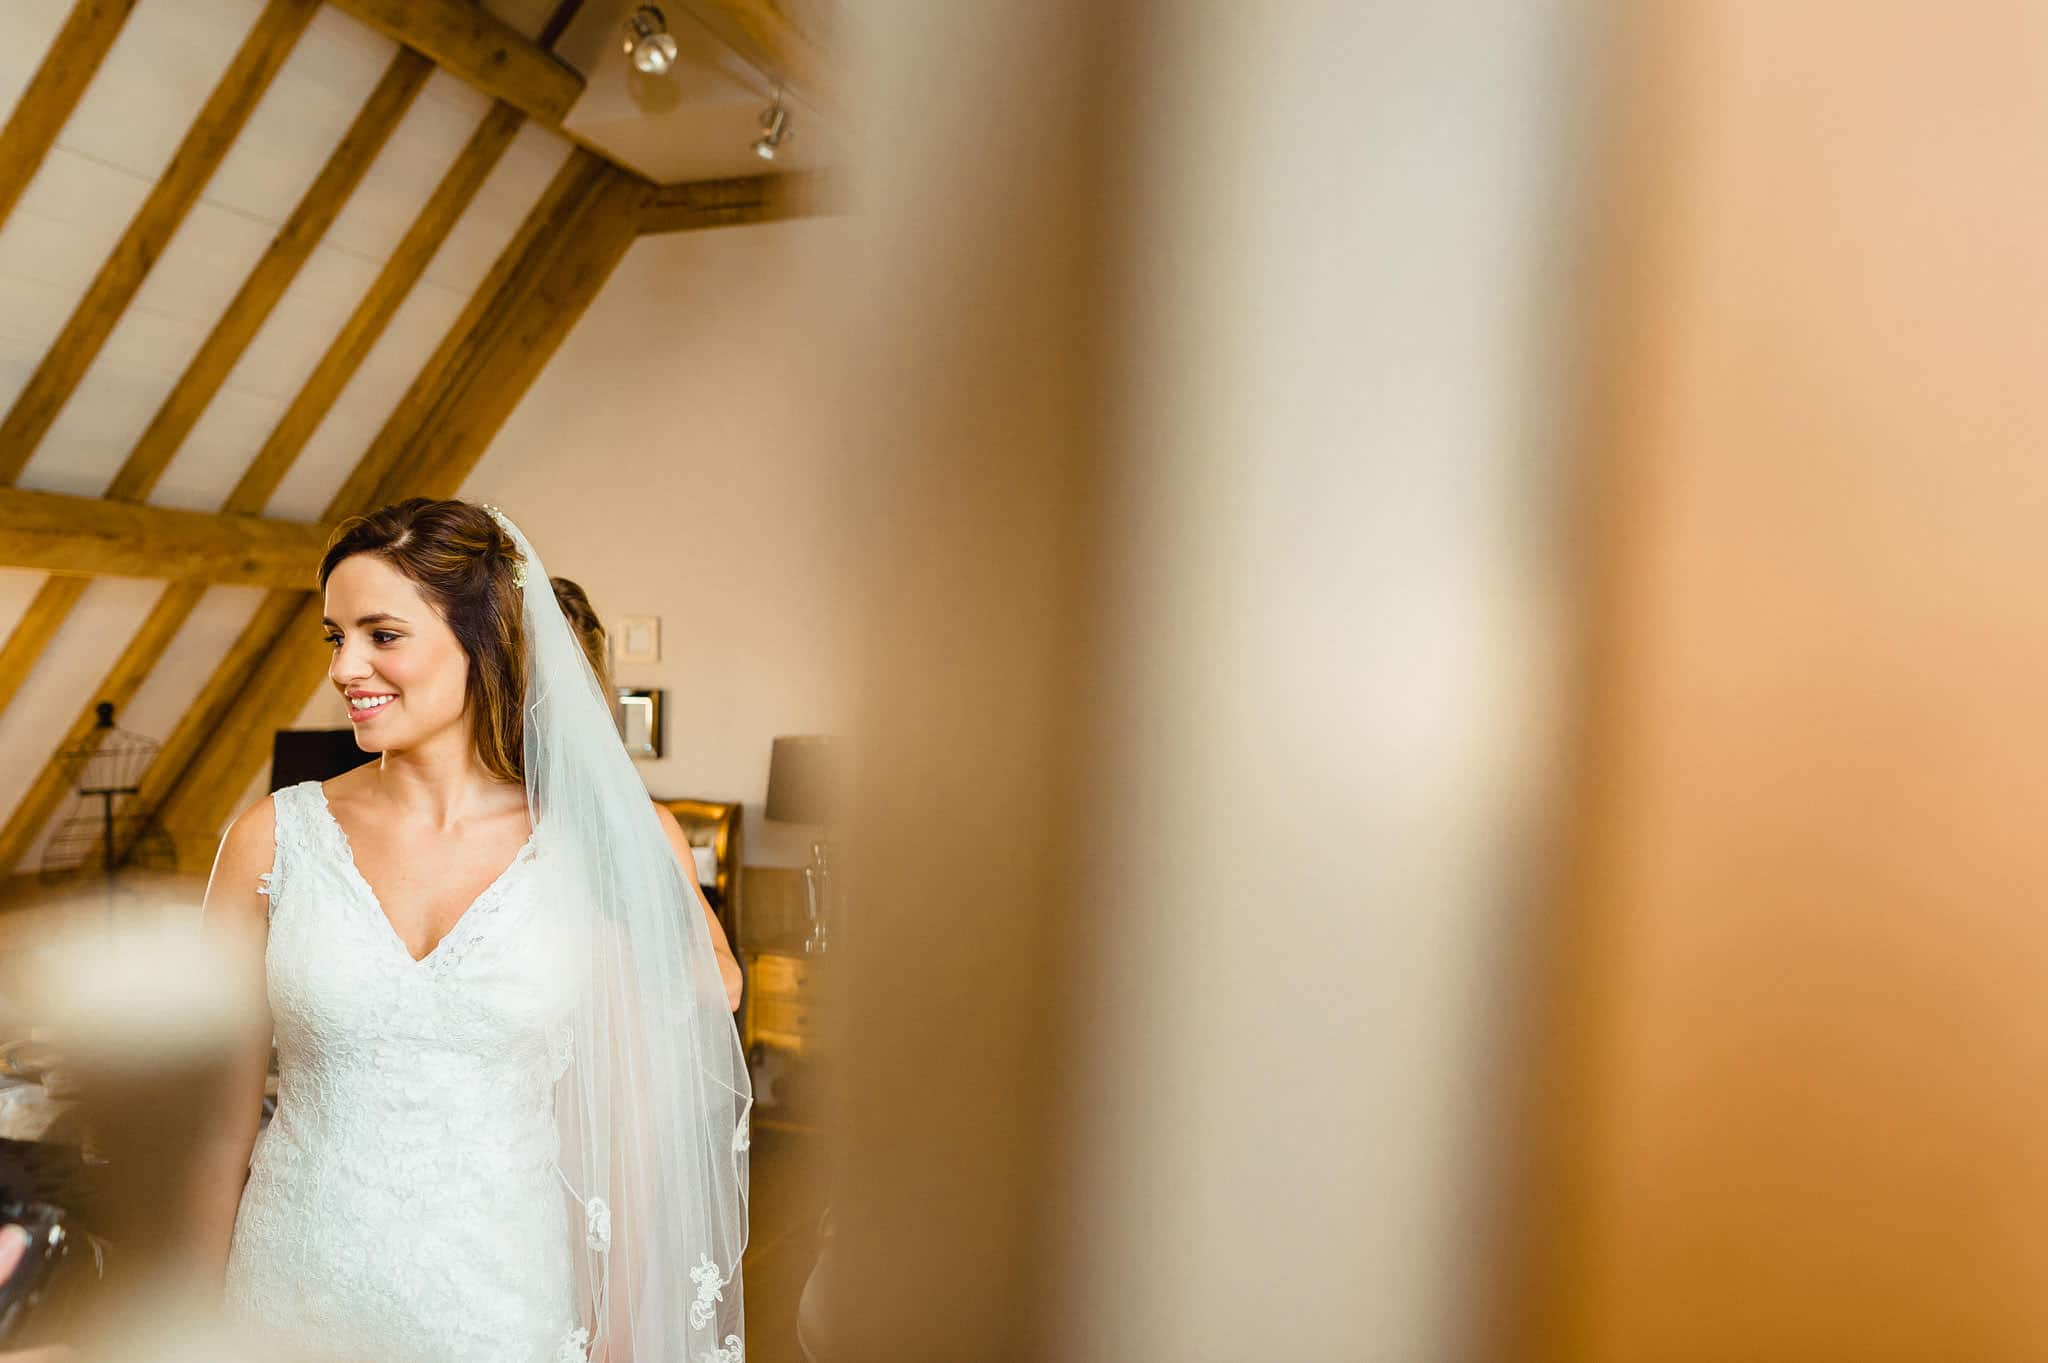 Wedding at Redhouse Barn in Stoke Prior, Worcestershire 42